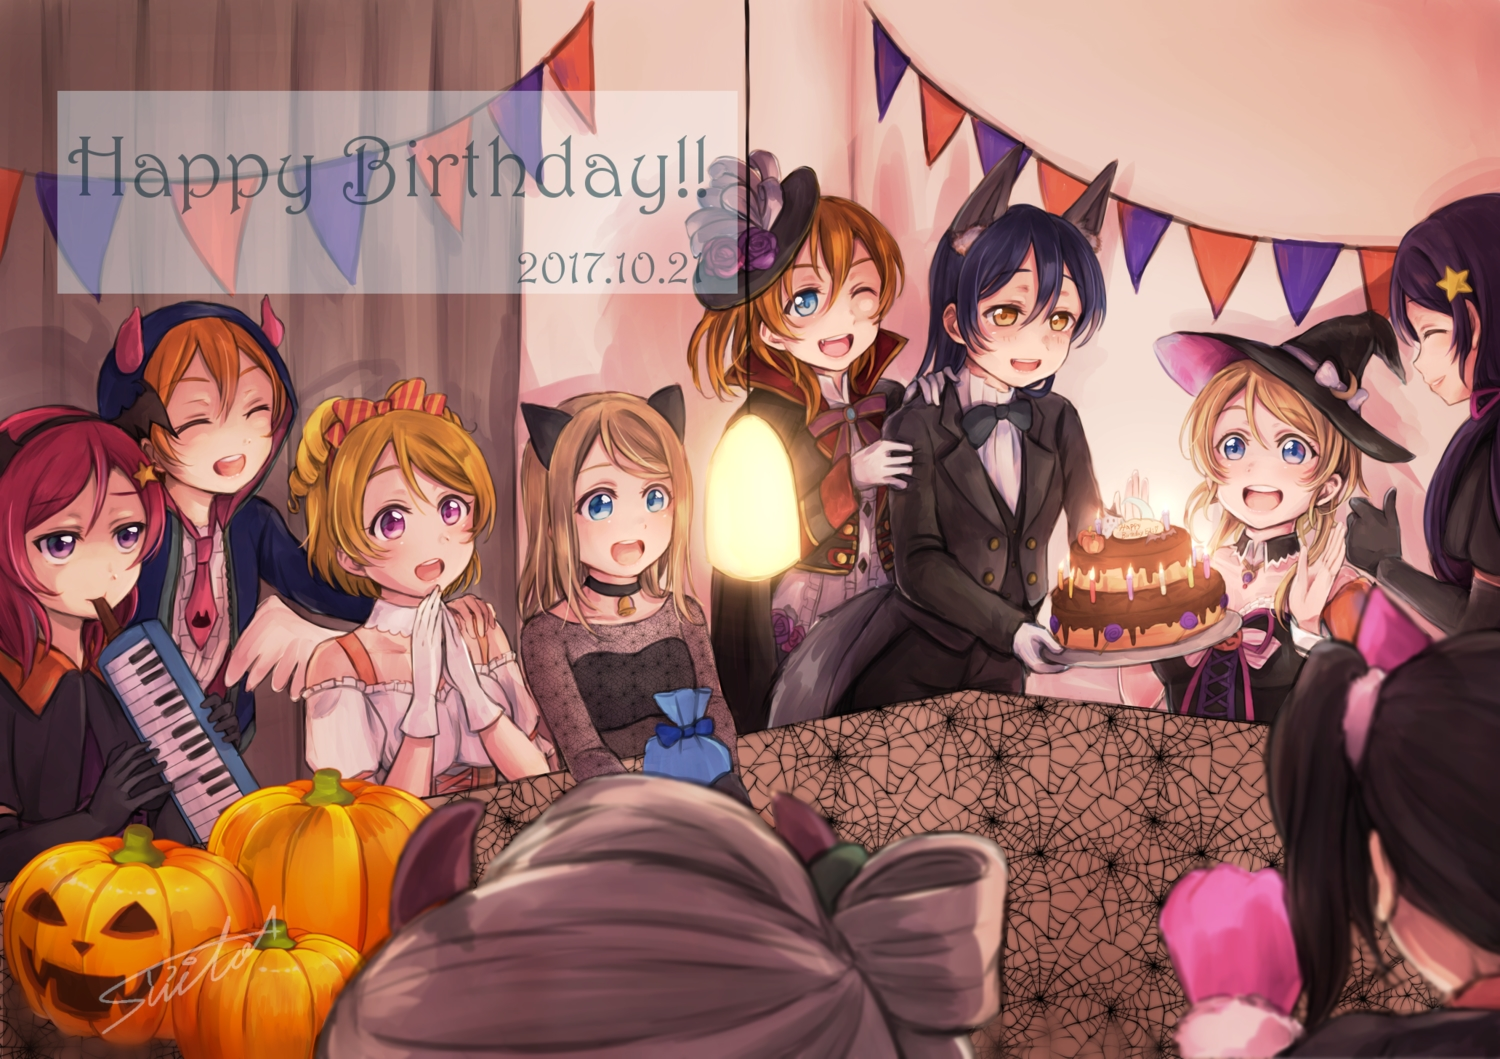 animal_ears ayase_arisa ayase_eri blue_eyes brown_hair cake food gloves group halloween hoshizora_rin kousaka_honoka long_hair love_live!_school_idol_project nishikino_maki orange_eyes orange_hair pumpkin purple_eyes red_hair short_hair signed sonoda_umi suito toujou_nozomi yazawa_nico